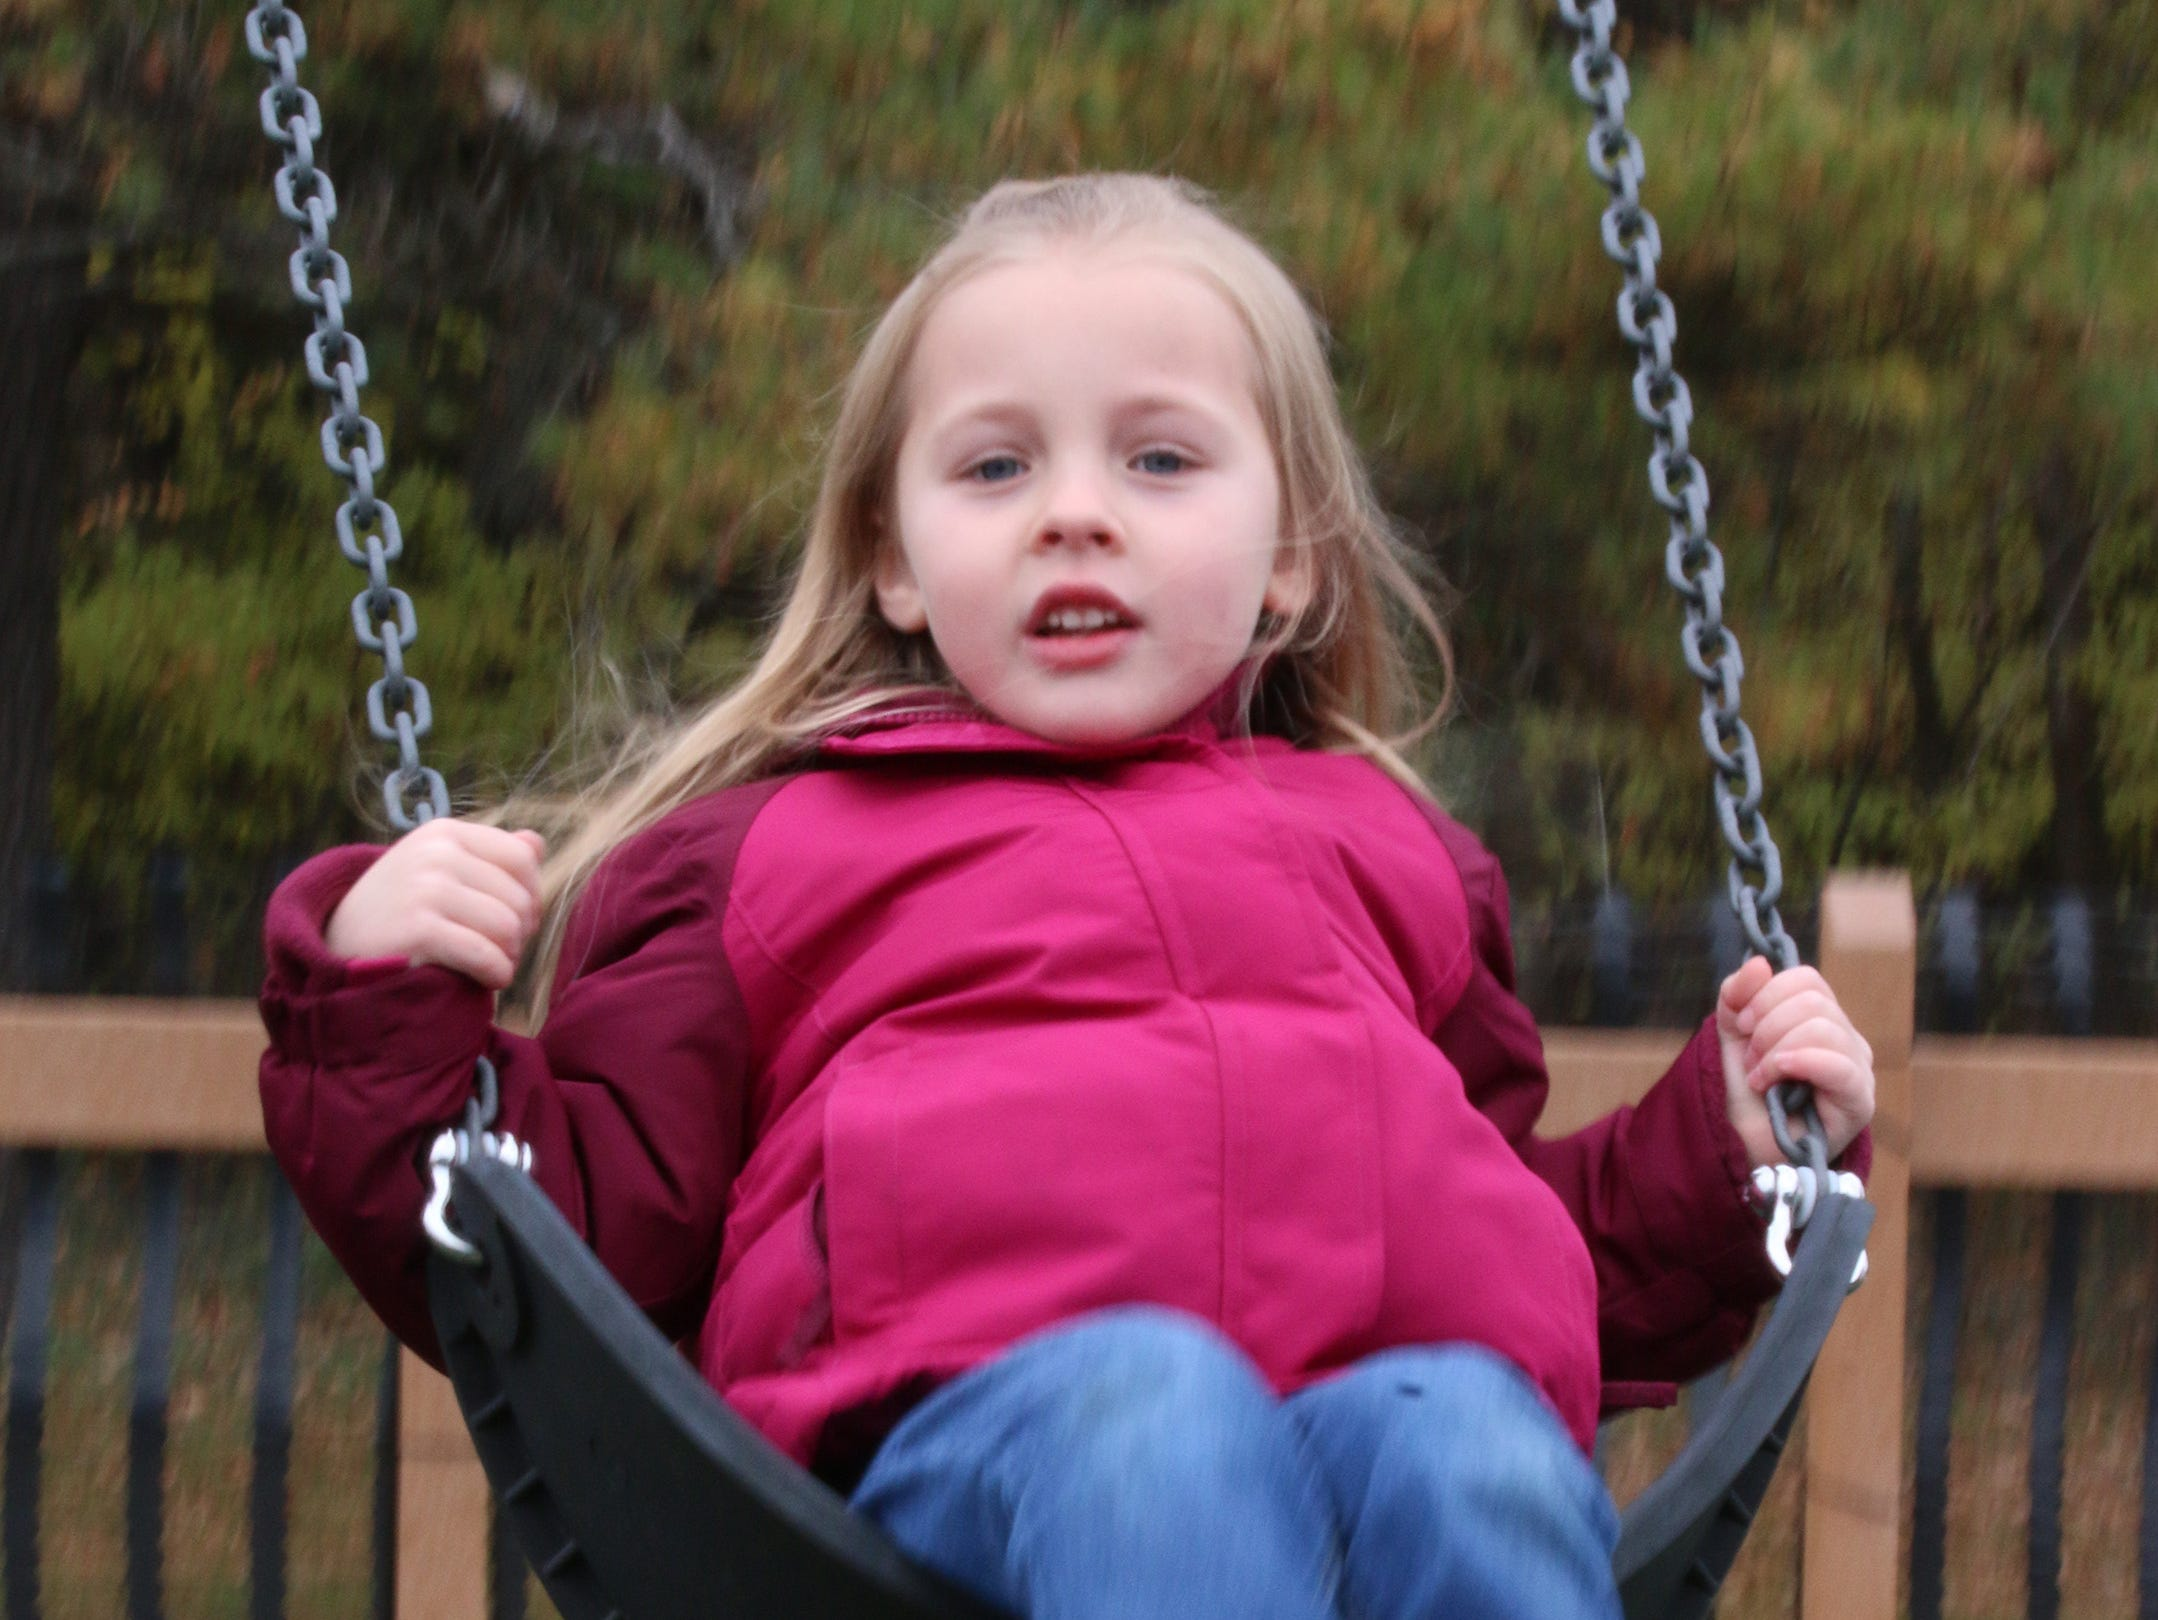 Audrey Wiltzius, 5, of Sheboygan, tests out a swing at the Shaw Family Playground, Saturday, September 27, 2018, in Sheboygan, Wis. The playground held a ribbon cutting event to showcase the adaptive playground that is accessible for children of all physical abilities.